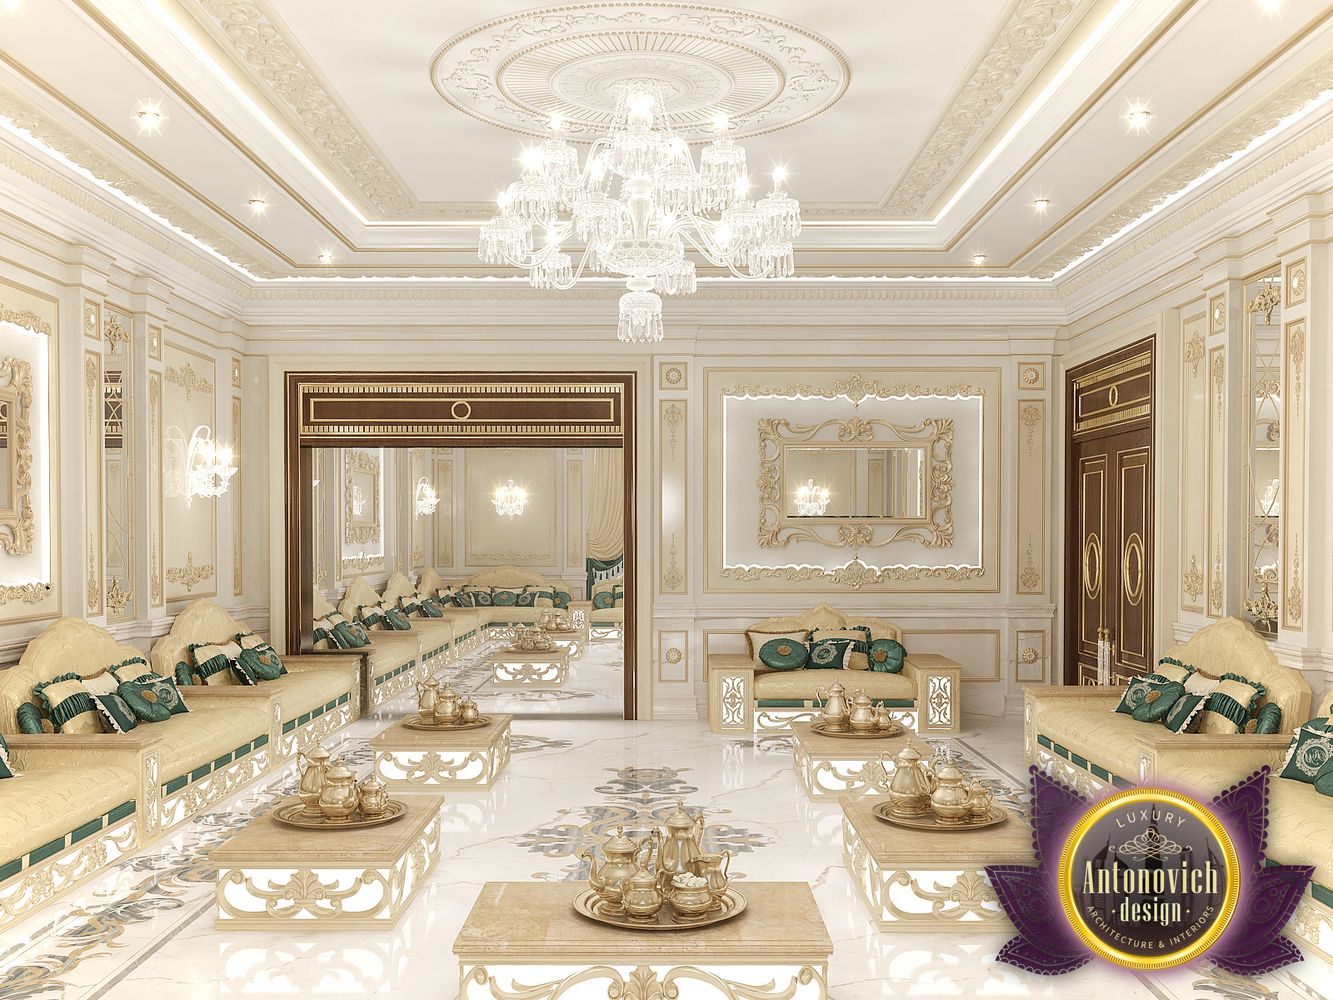 Luxury Ceiling Design Nigeiradesign Arabic Majlis Interior Design From Luxury